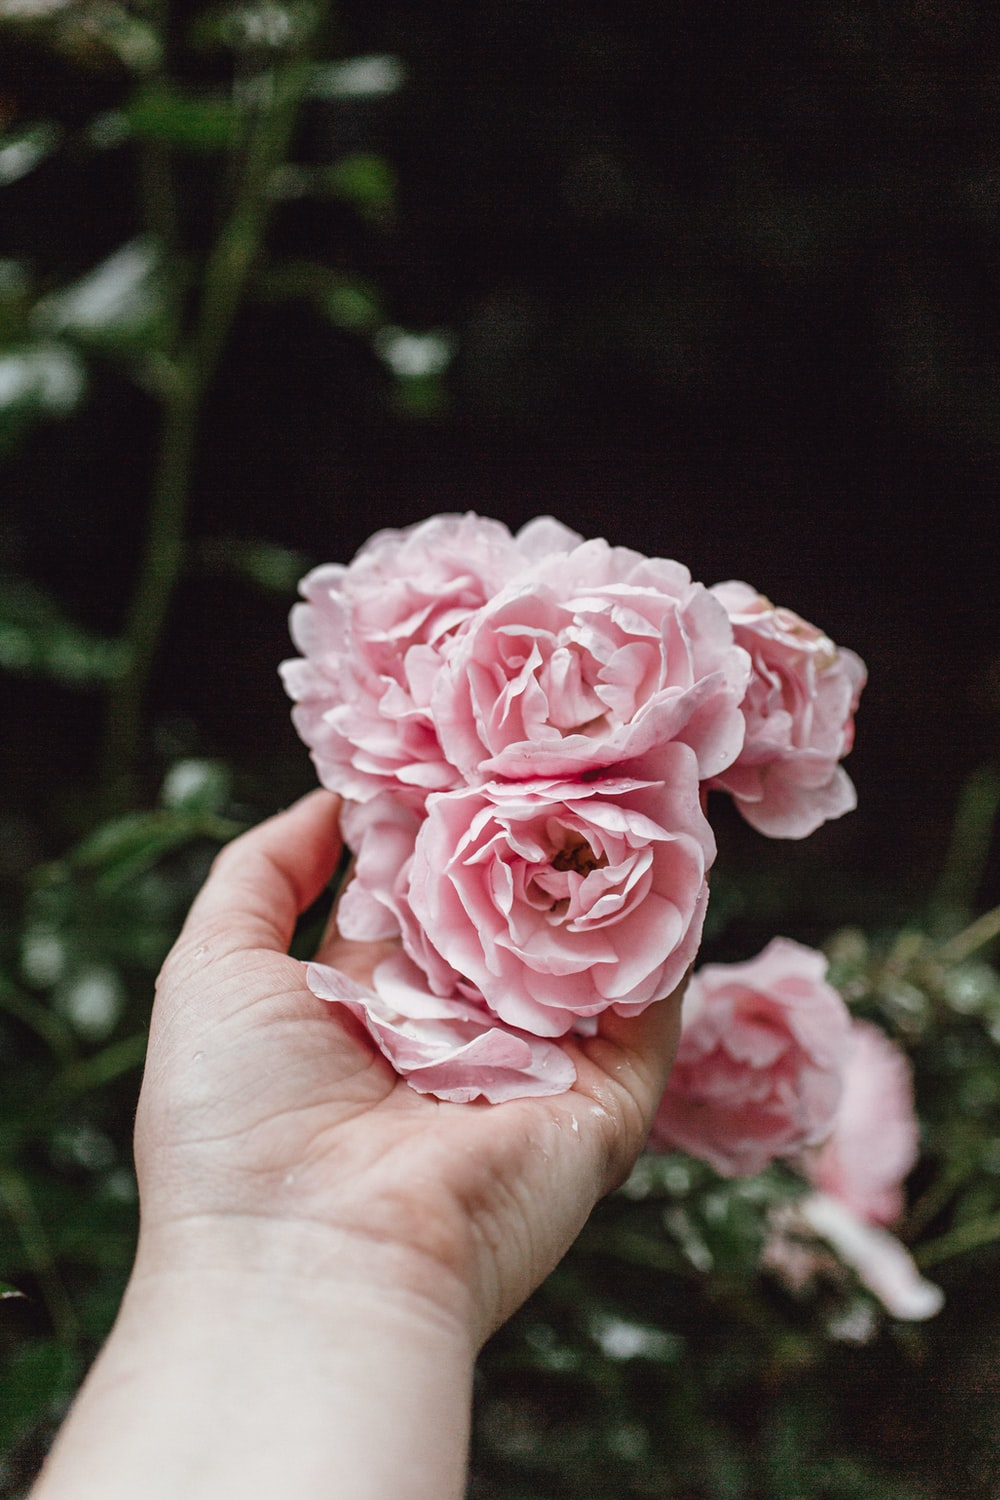 person holding pink rose in bloom during daytime